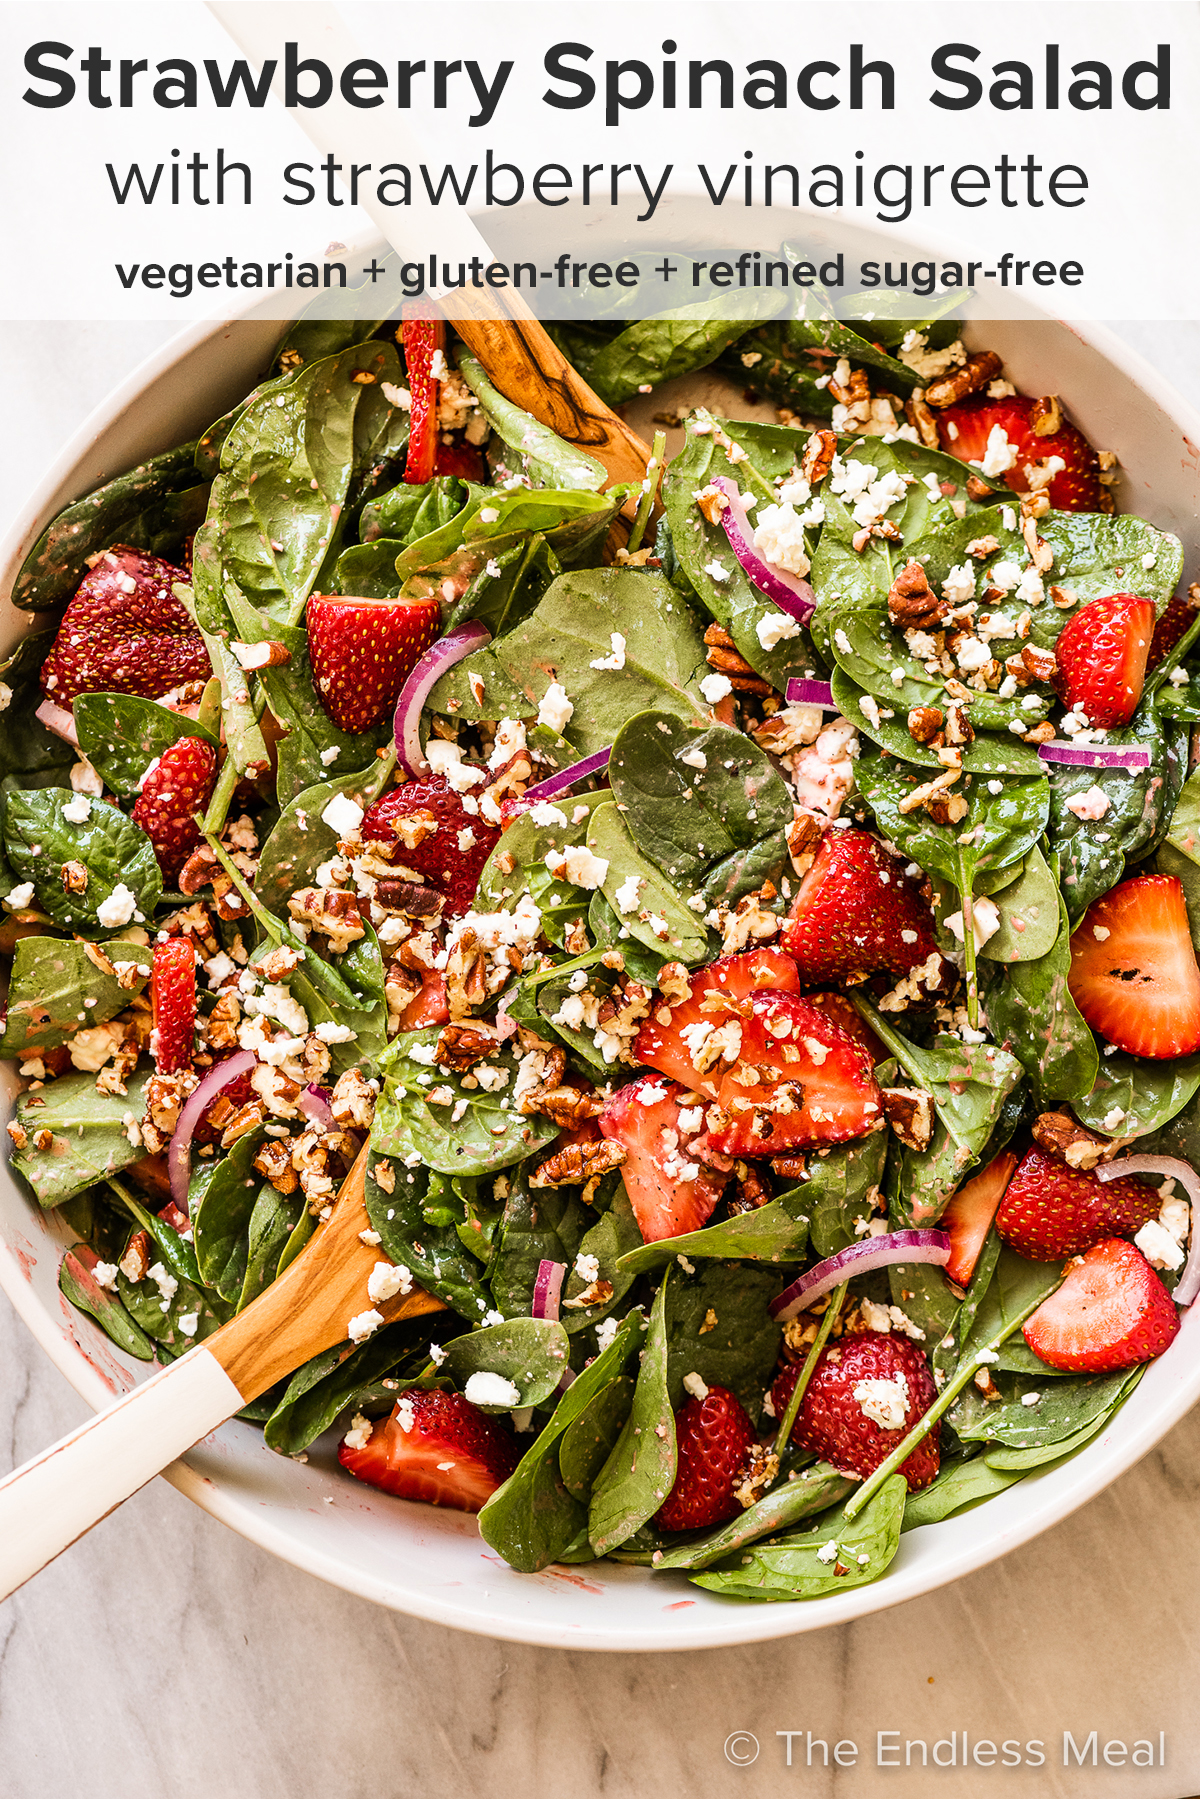 Strawberry Spinach Salad in a serving bowl with tongs and the recipe title on top of the picture.